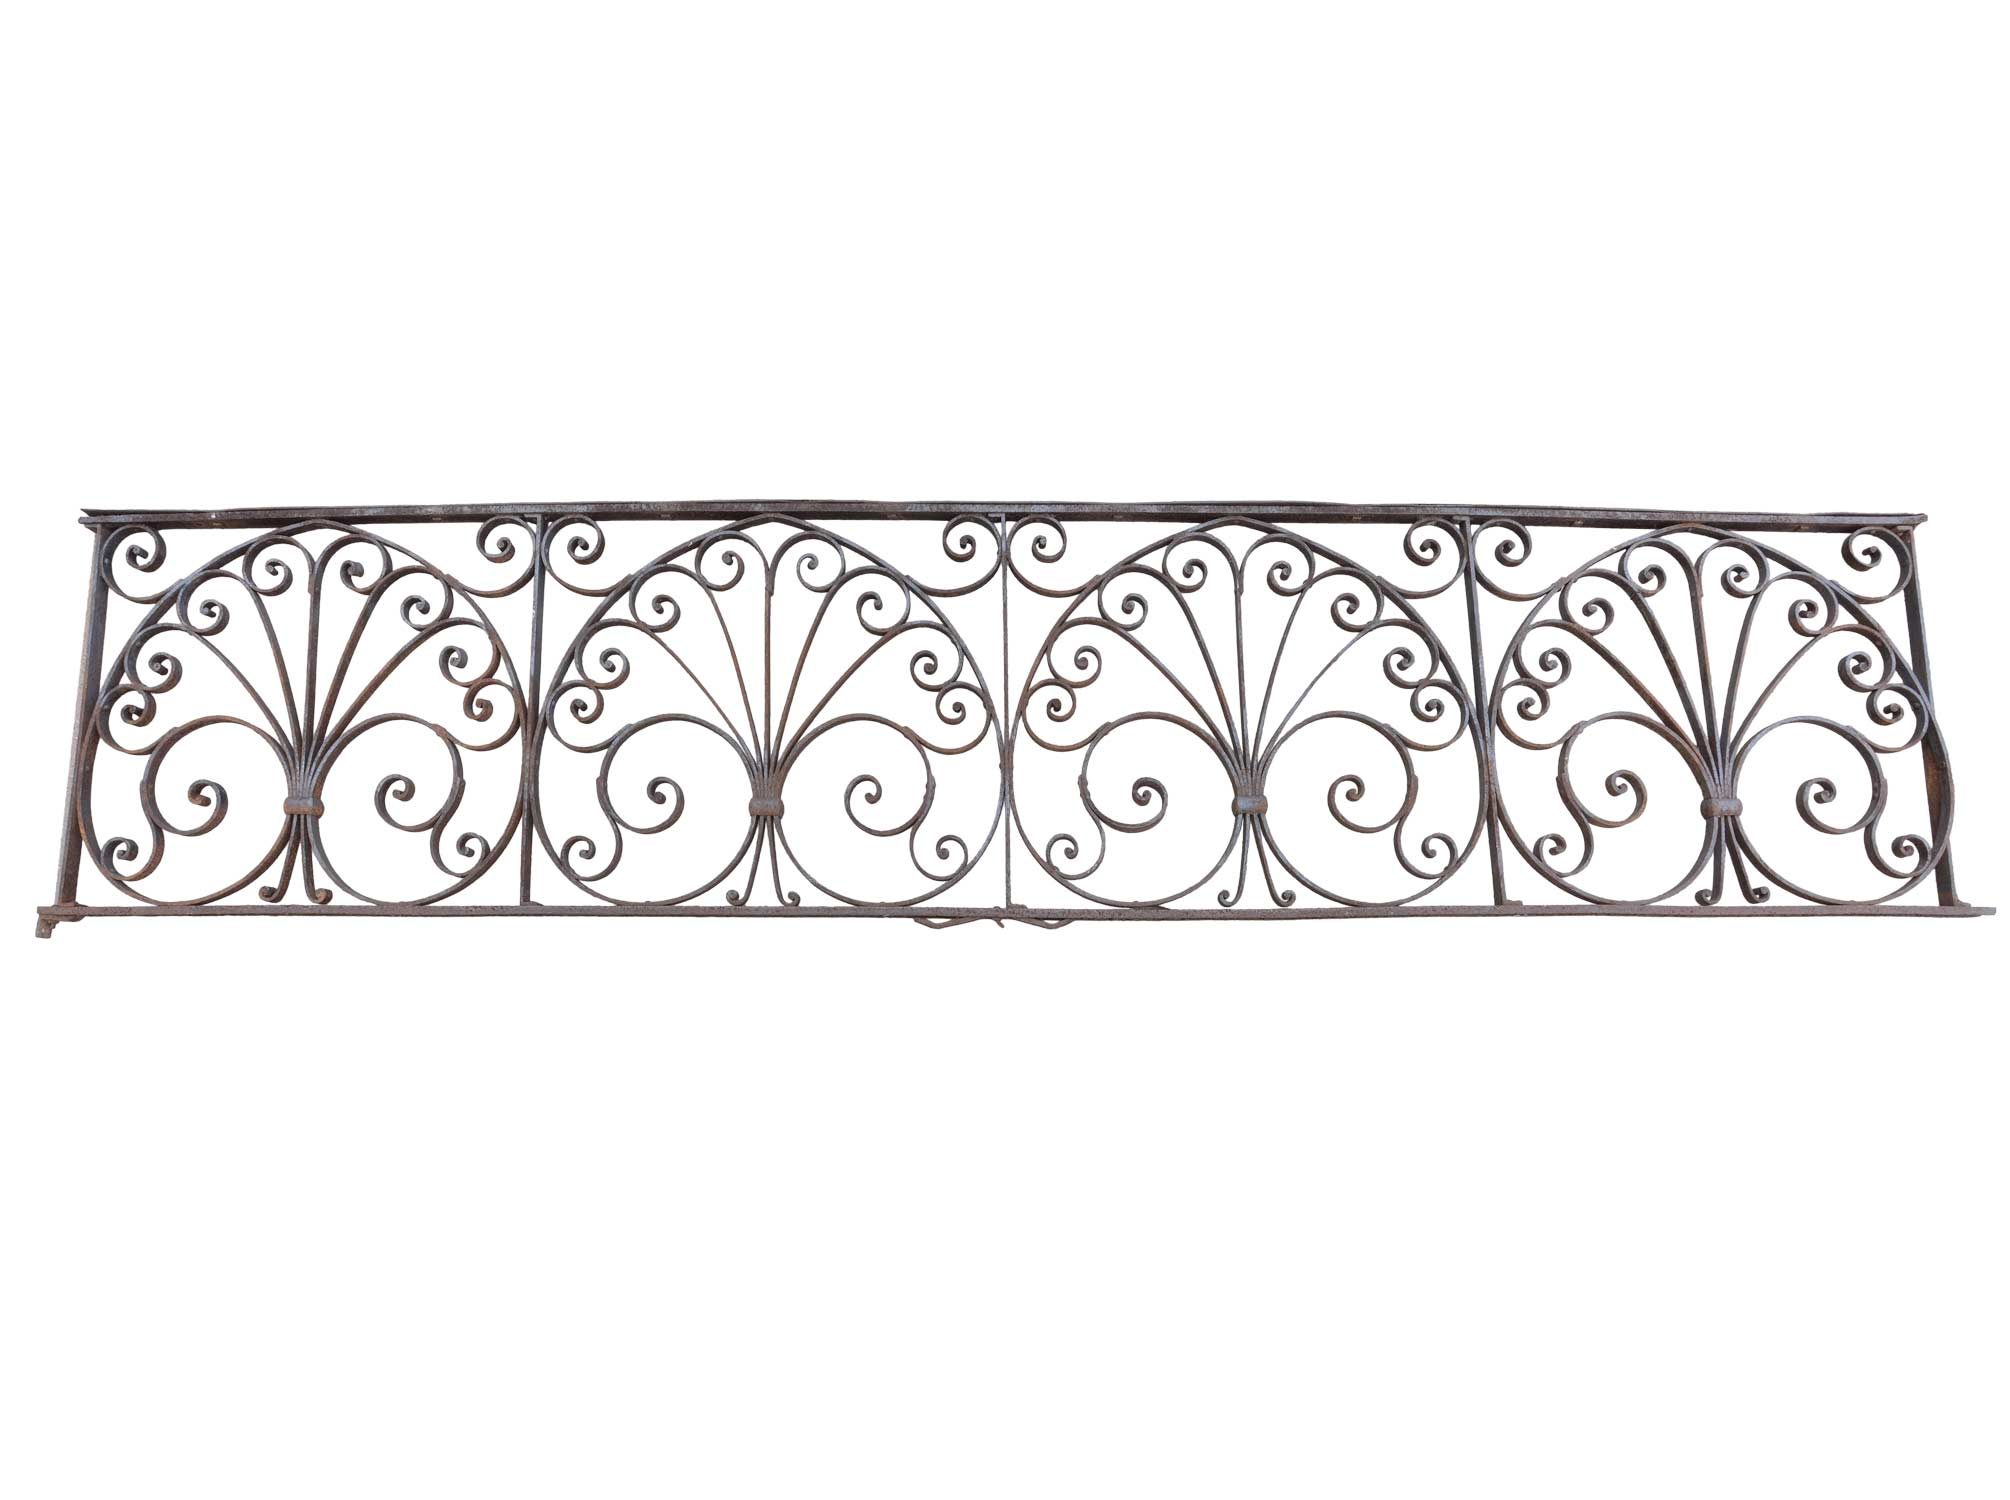 46070-iron-fence-with-decorative-scroll-shell.jpg